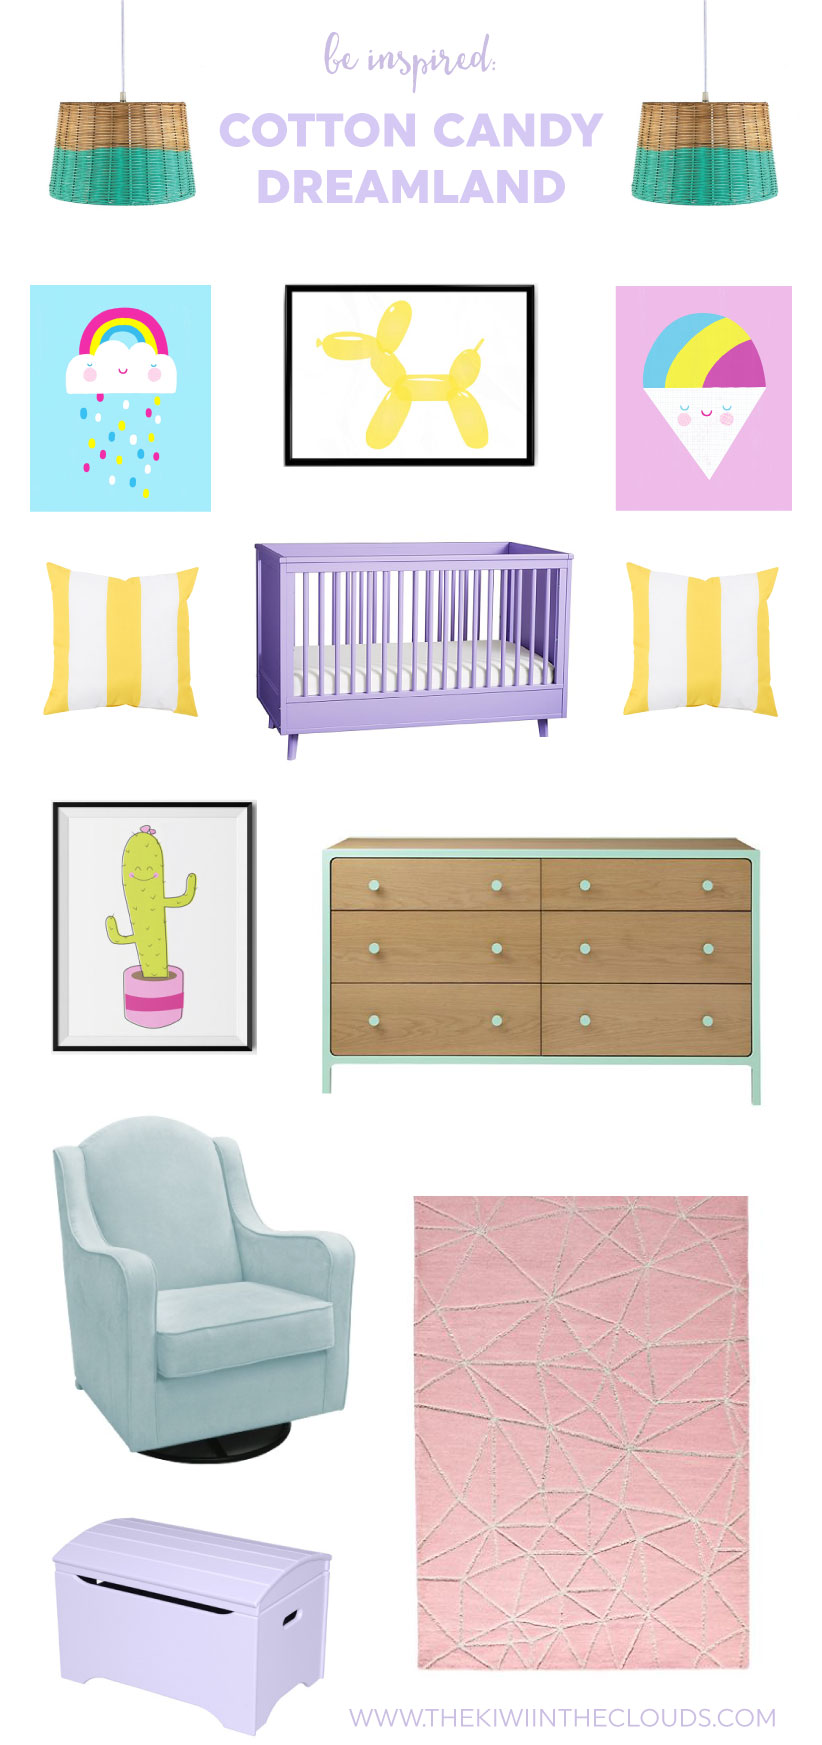 Cotton Candy Dreamland Nursery | If you love bright, cheery and girly nursery themes, then you will be head over heels for this cotton candy dreamland bedroom design. Click through to find all the links to create a pastel girl's nursery room today!